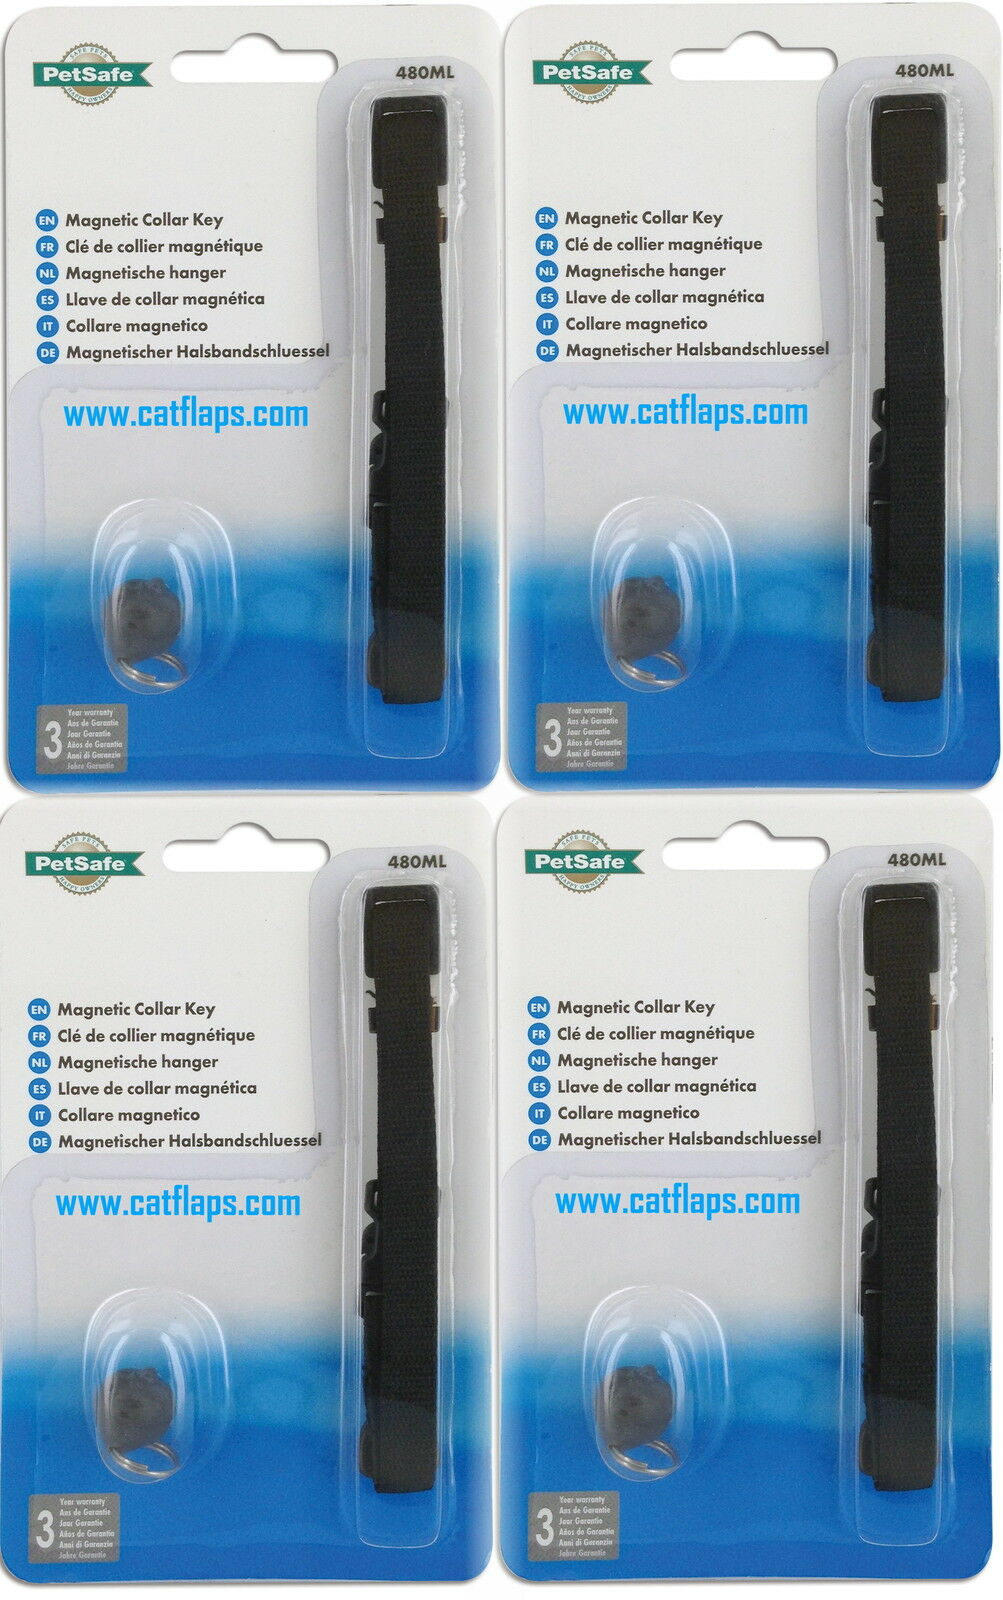 Magnetic Cat Collar & Magnet Key Staywell 400 932 480 M